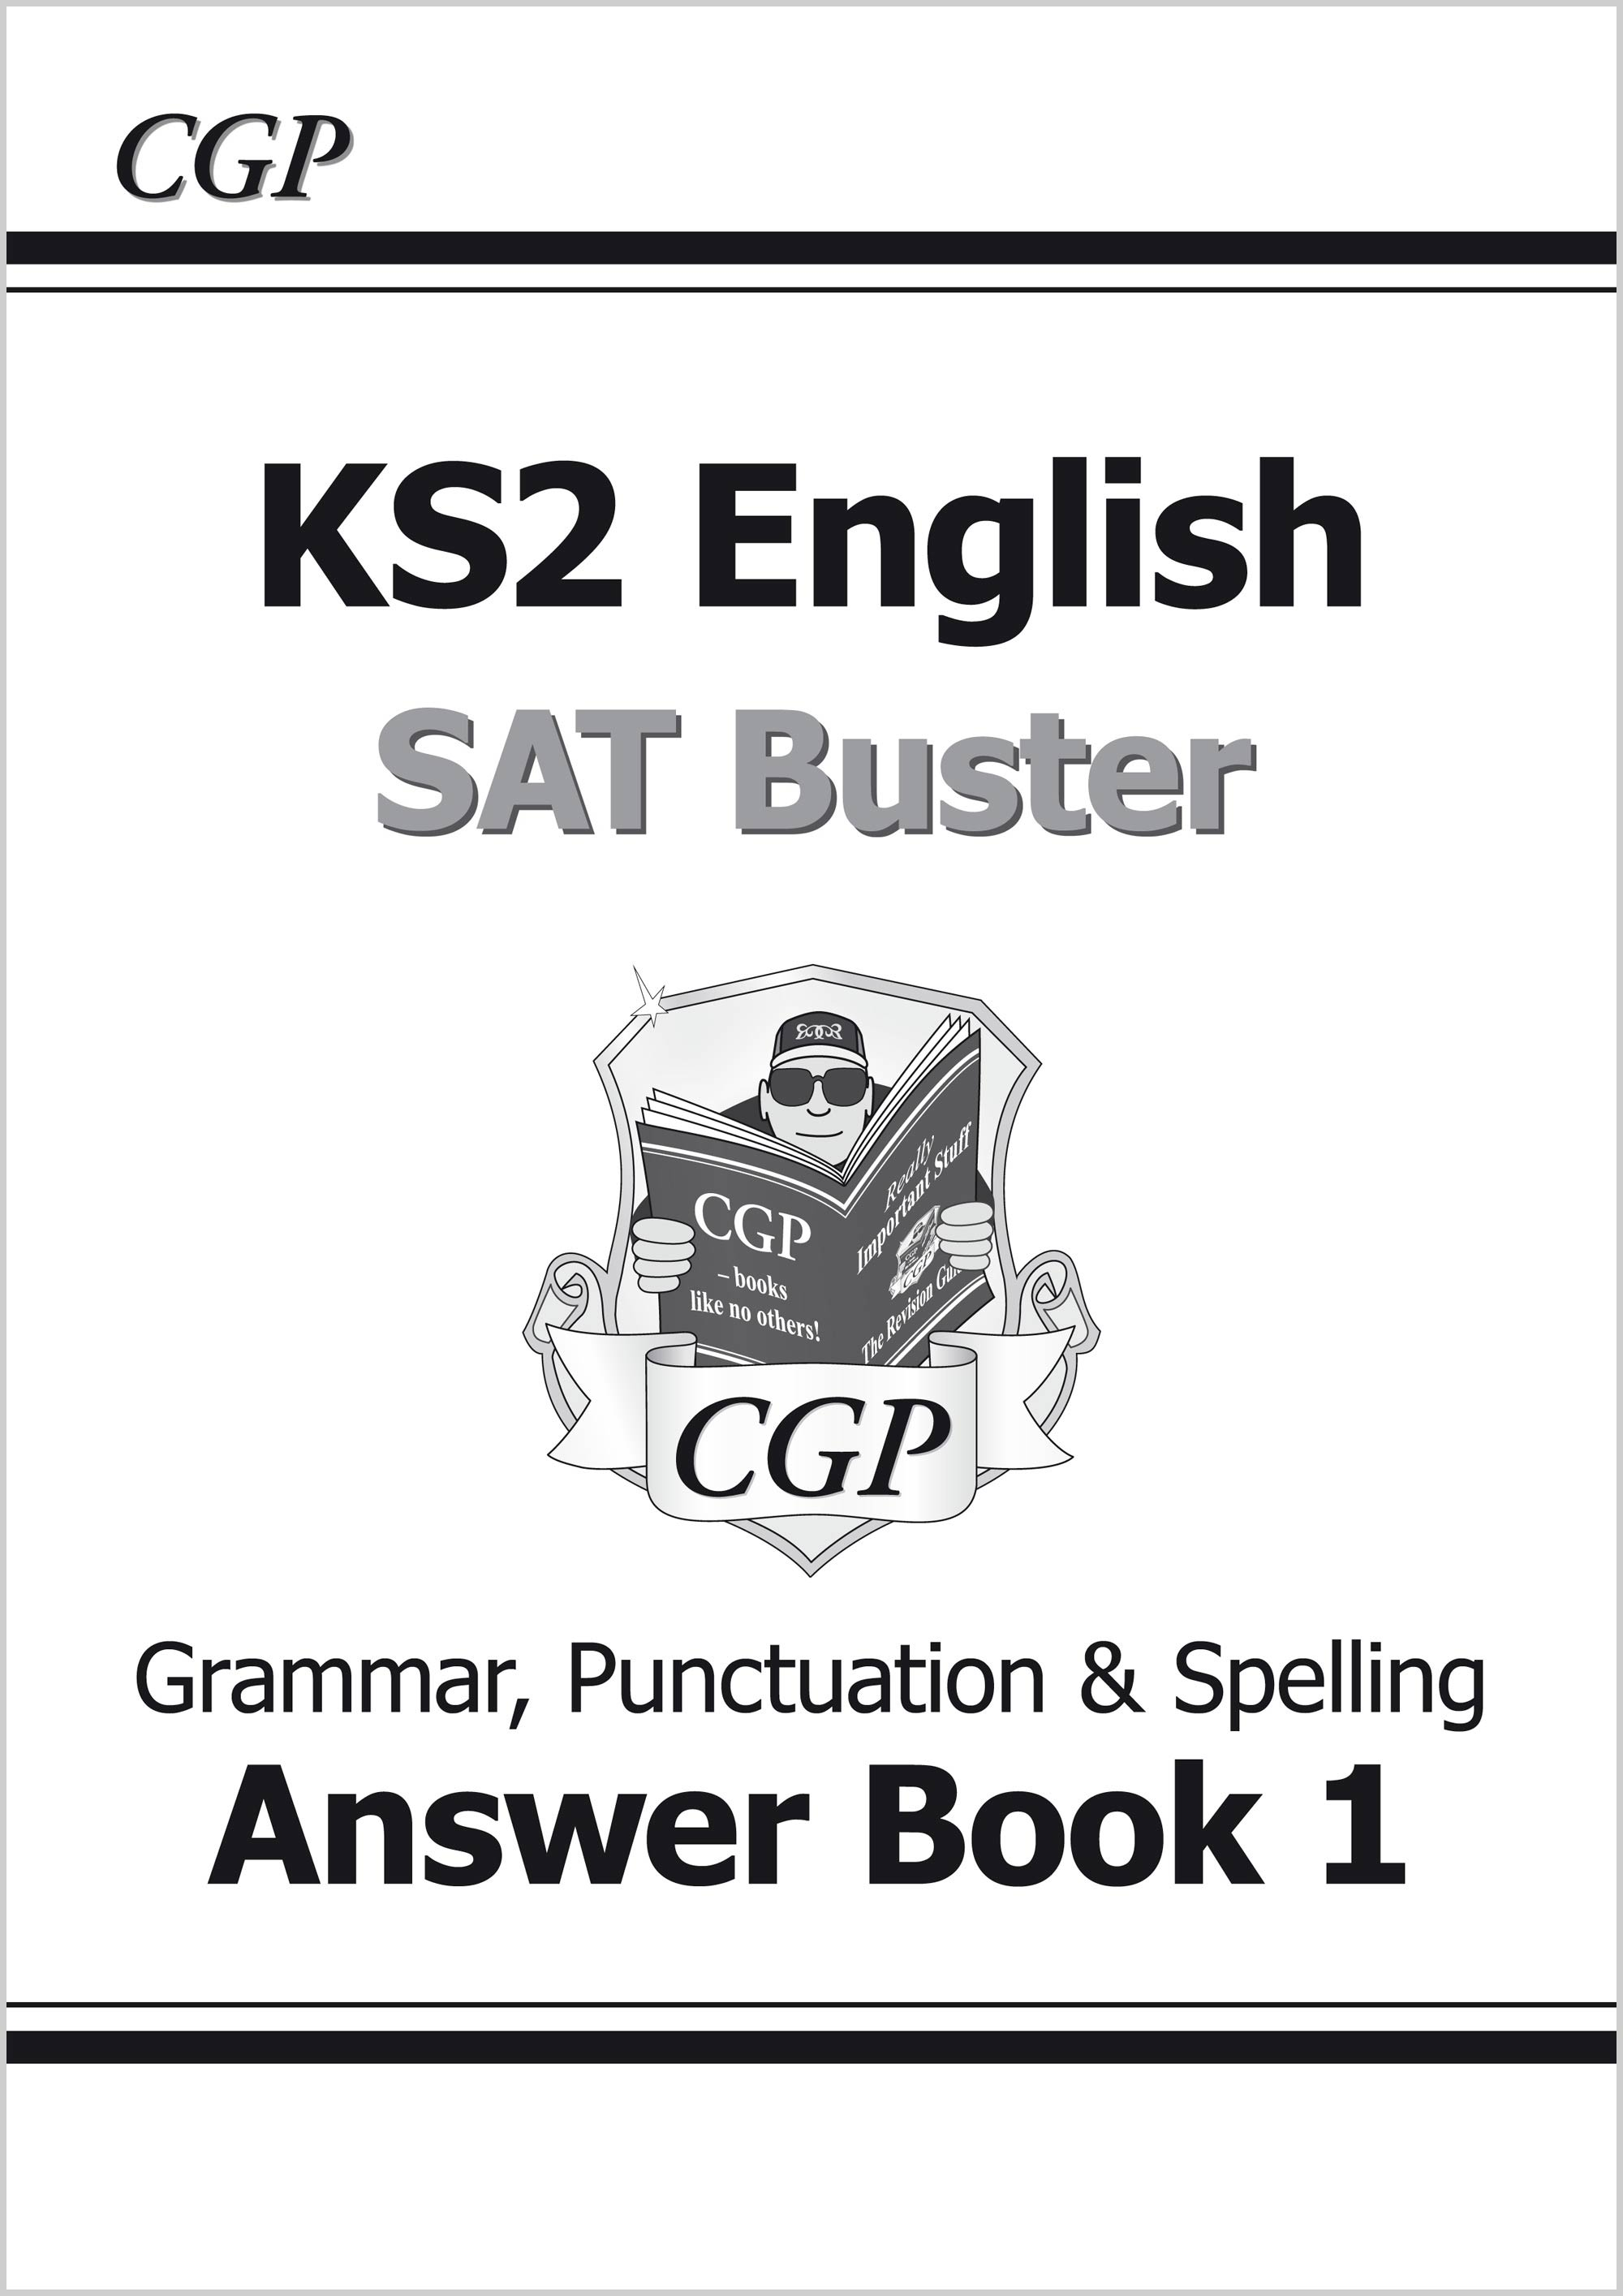 E6GA22 - KS2 English SAT Buster Book 1 Answers - Grammar, Punctuation & Spelling (for the 2019 tests